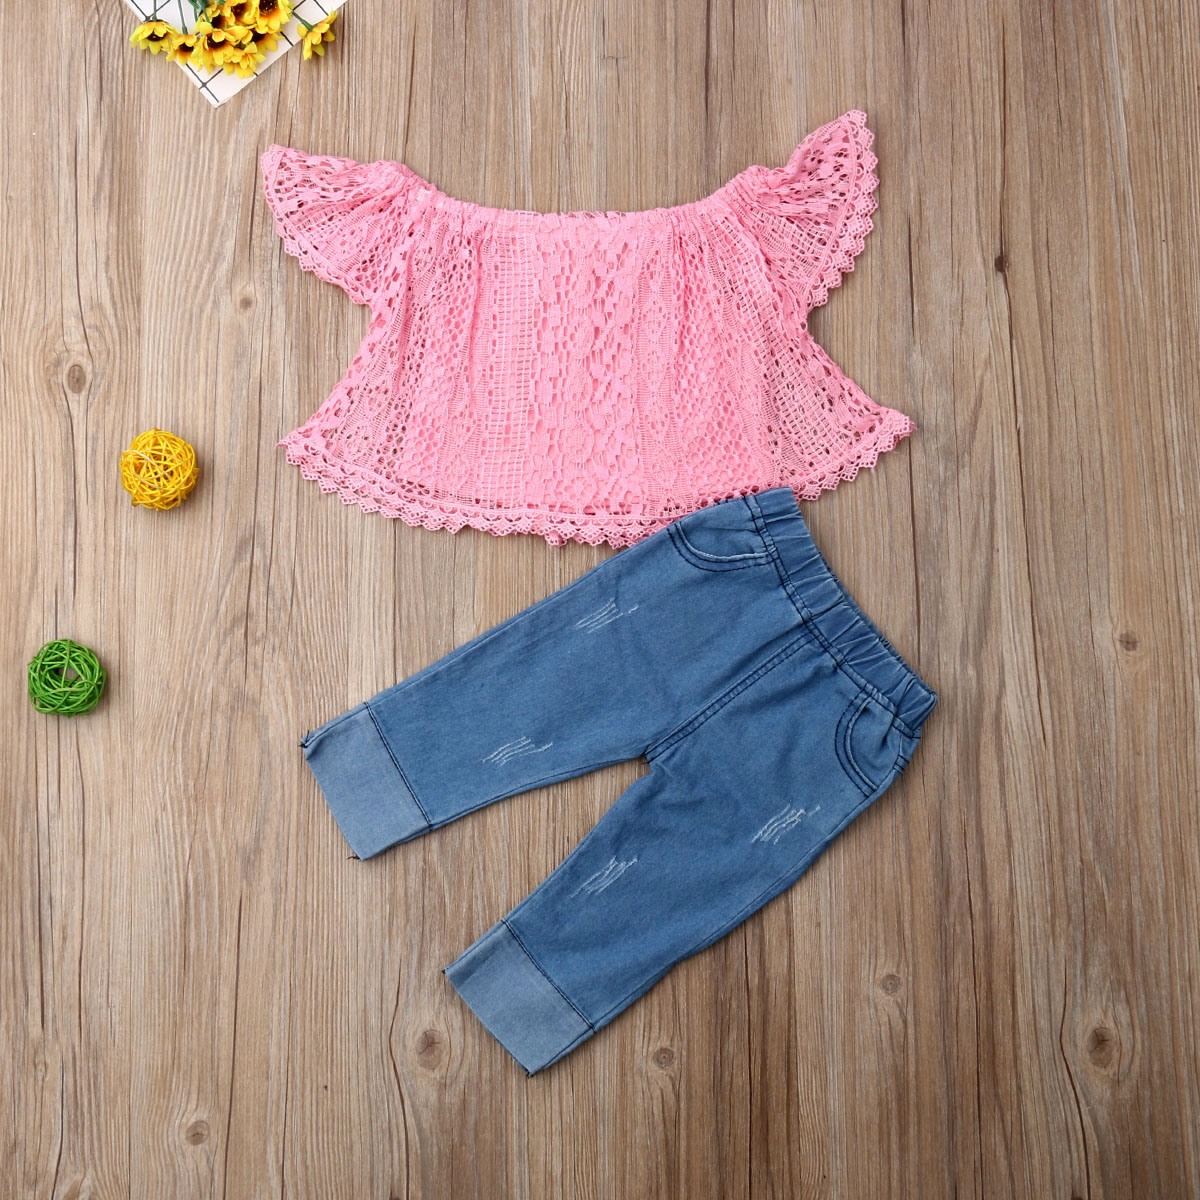 Emmababy Newest Fashion Toddler Baby Girl Clothes Off Shoulder Lace Reticular Tops Denim Long Pants 2Pcs Outfits Clothes